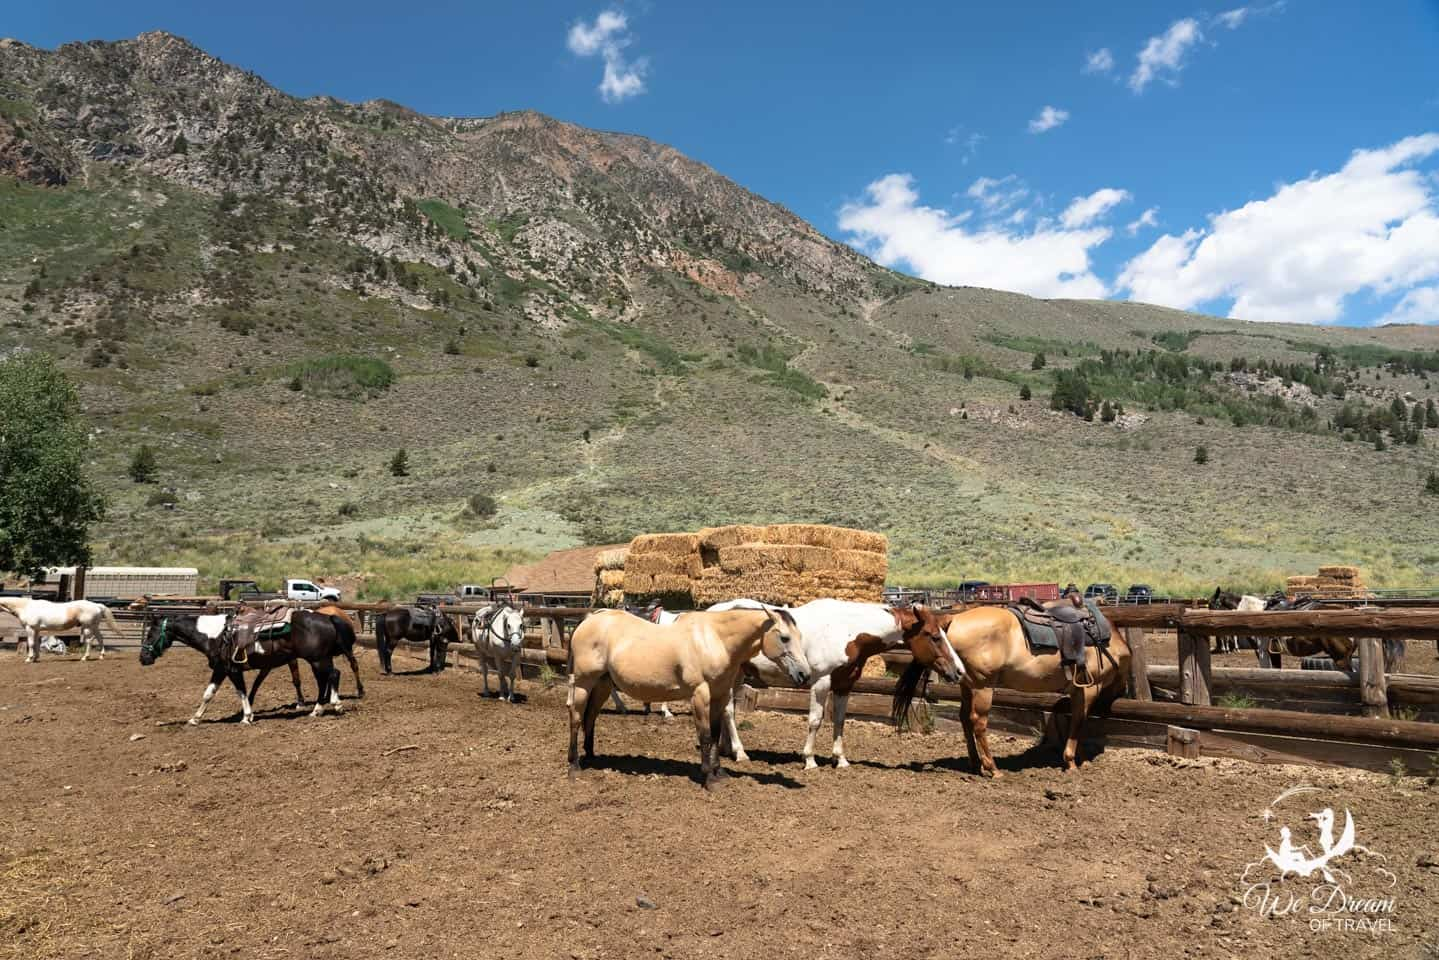 Horses at Frontier Pack Train wait to be booked for an adventure through the backcountry of the Eastern Sierras.